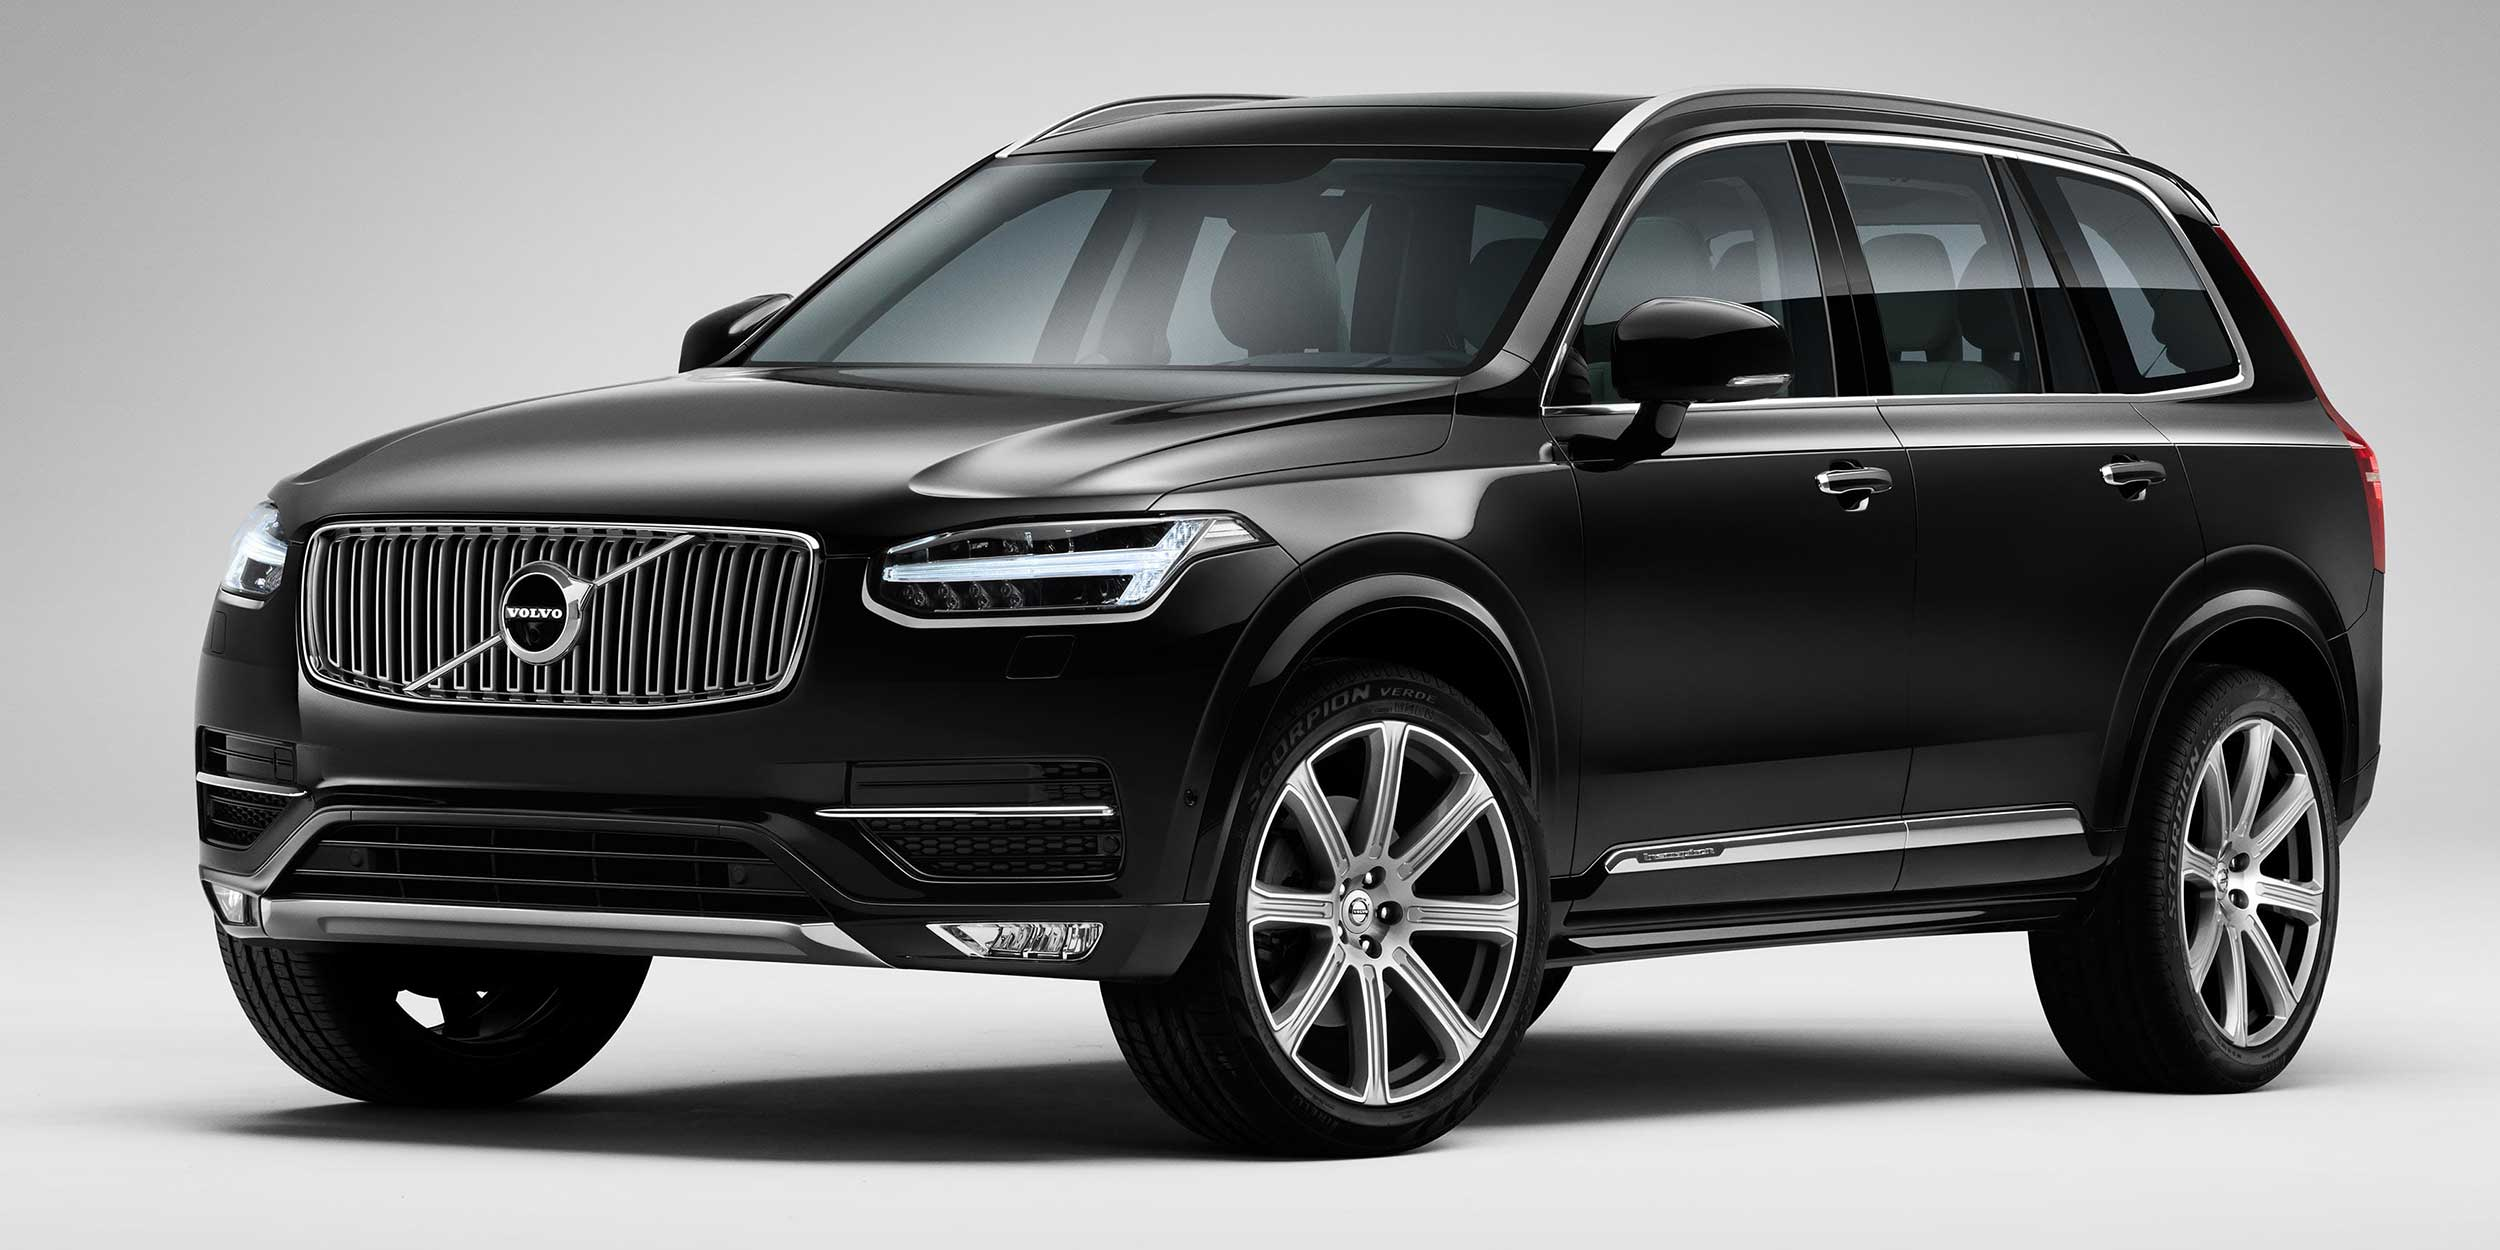 Review the volvo xc90